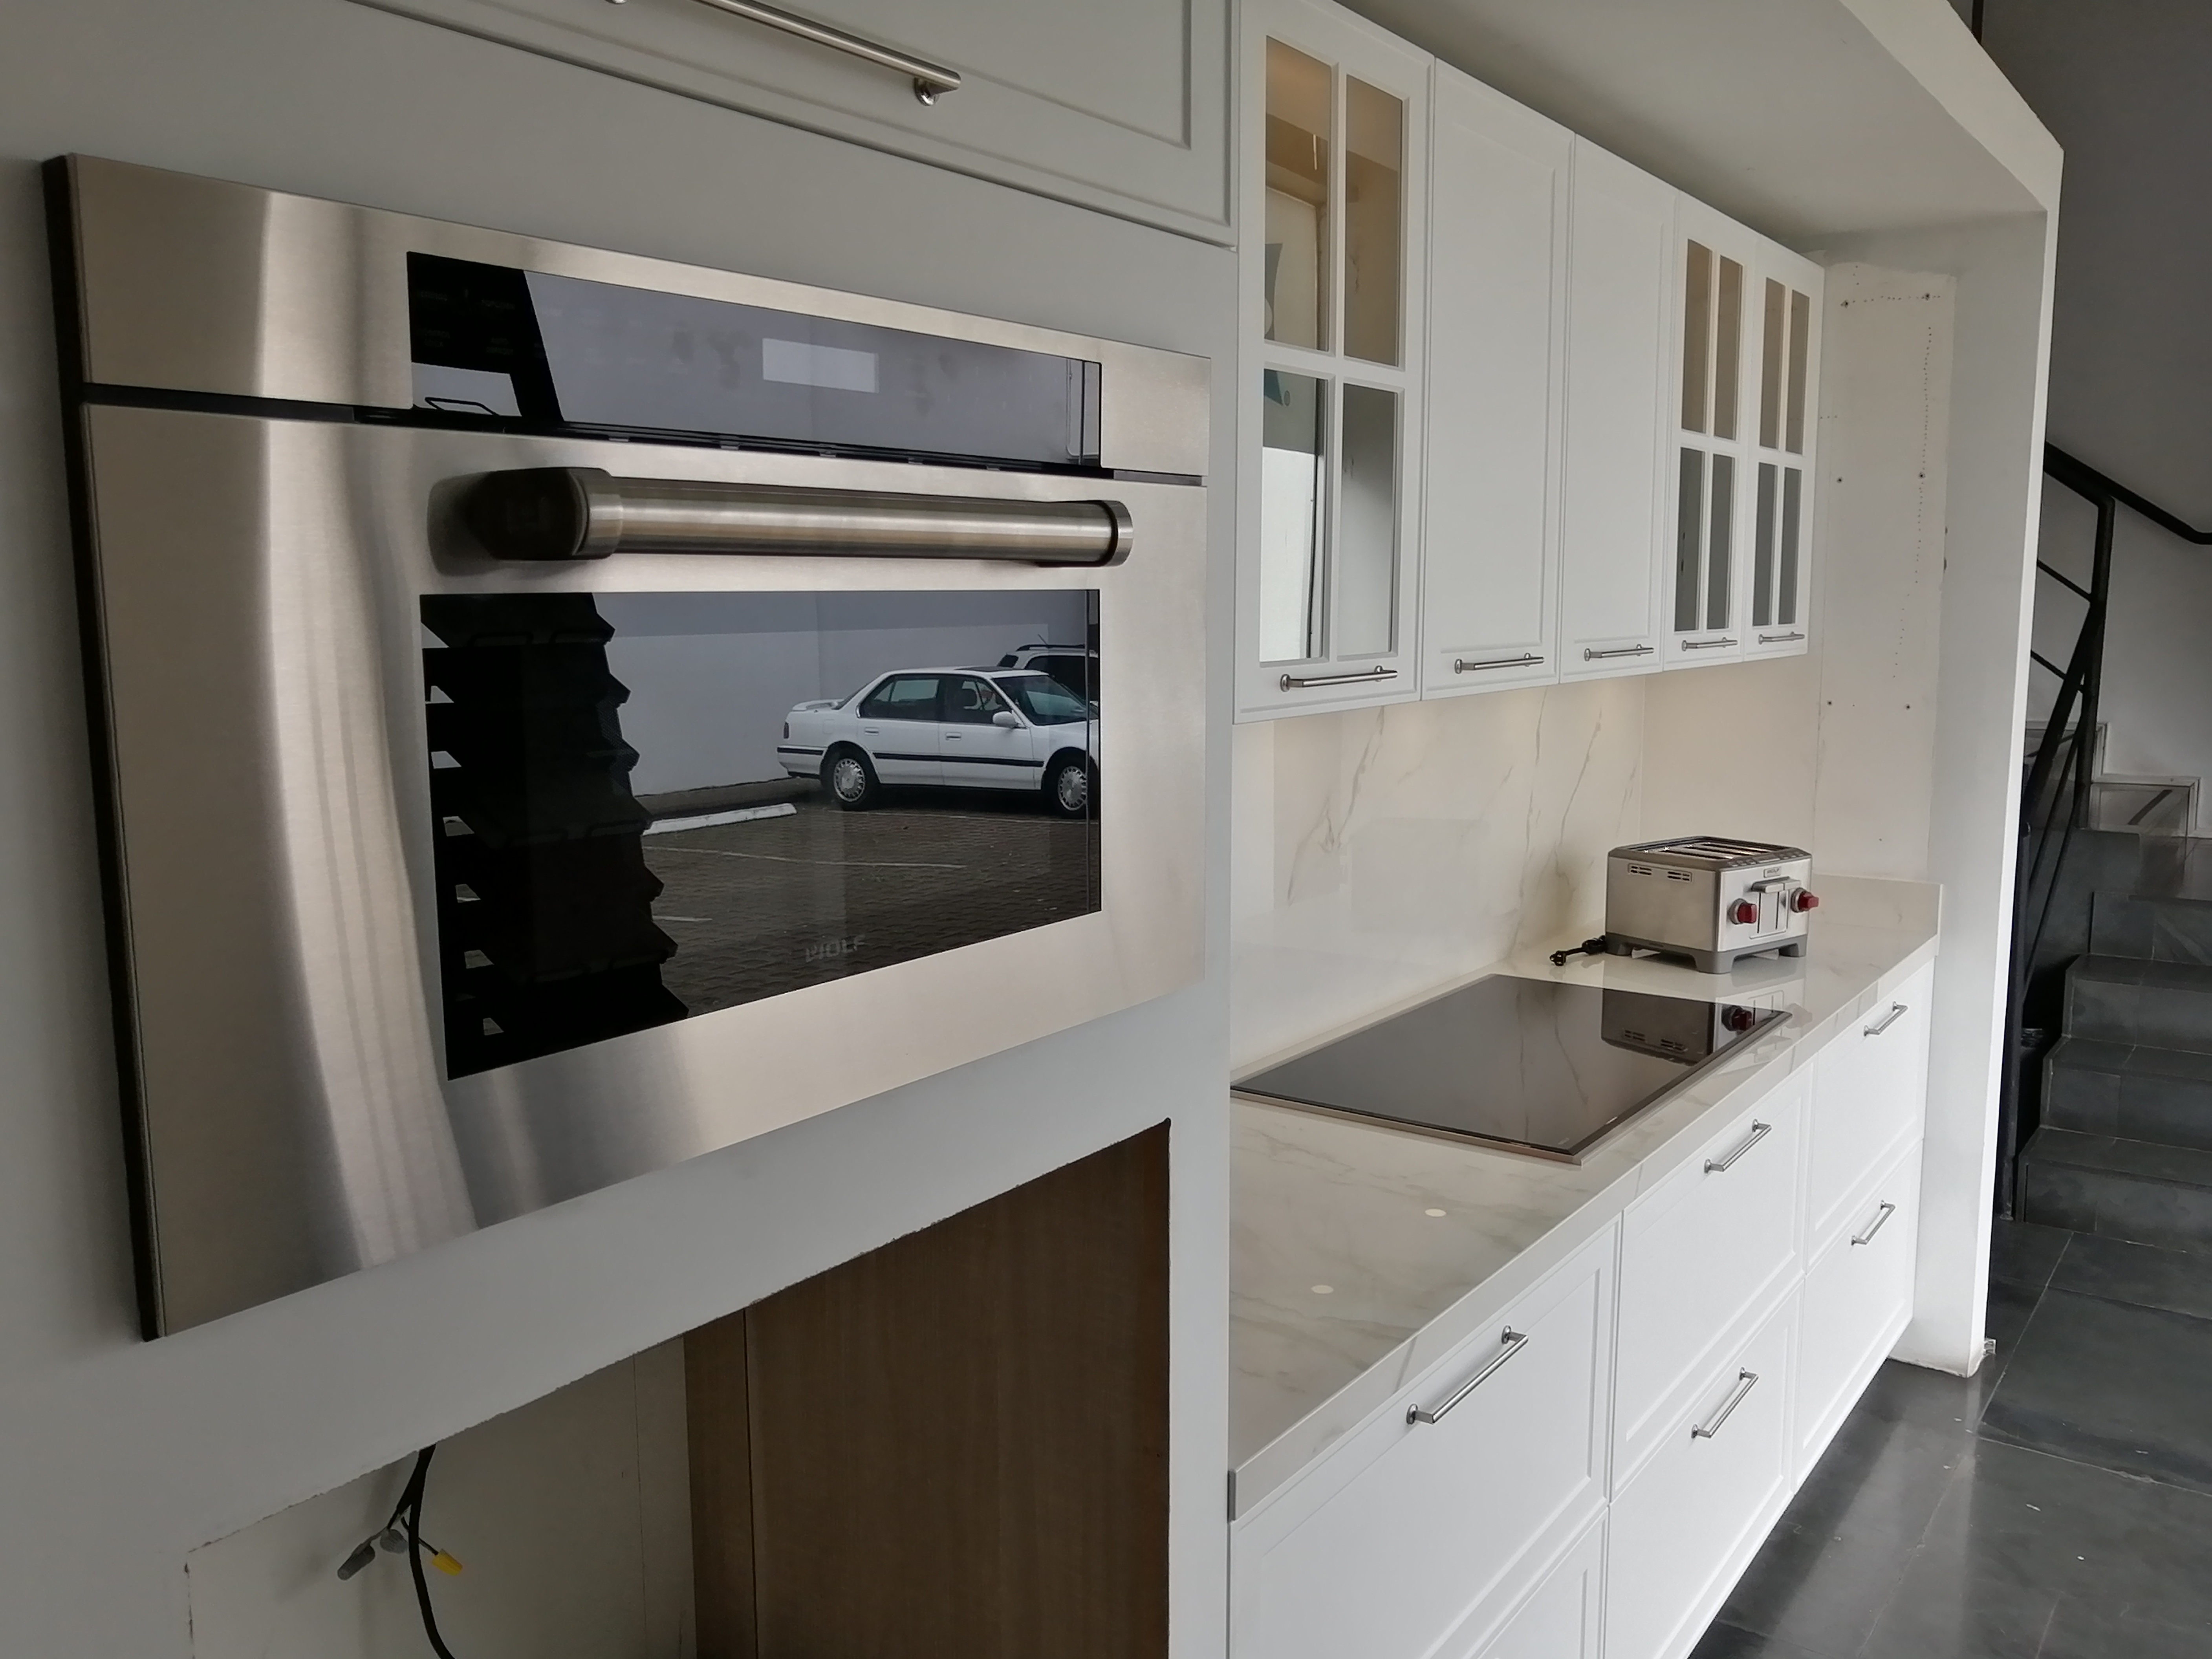 Wolf kitchen with oven and coffee machine